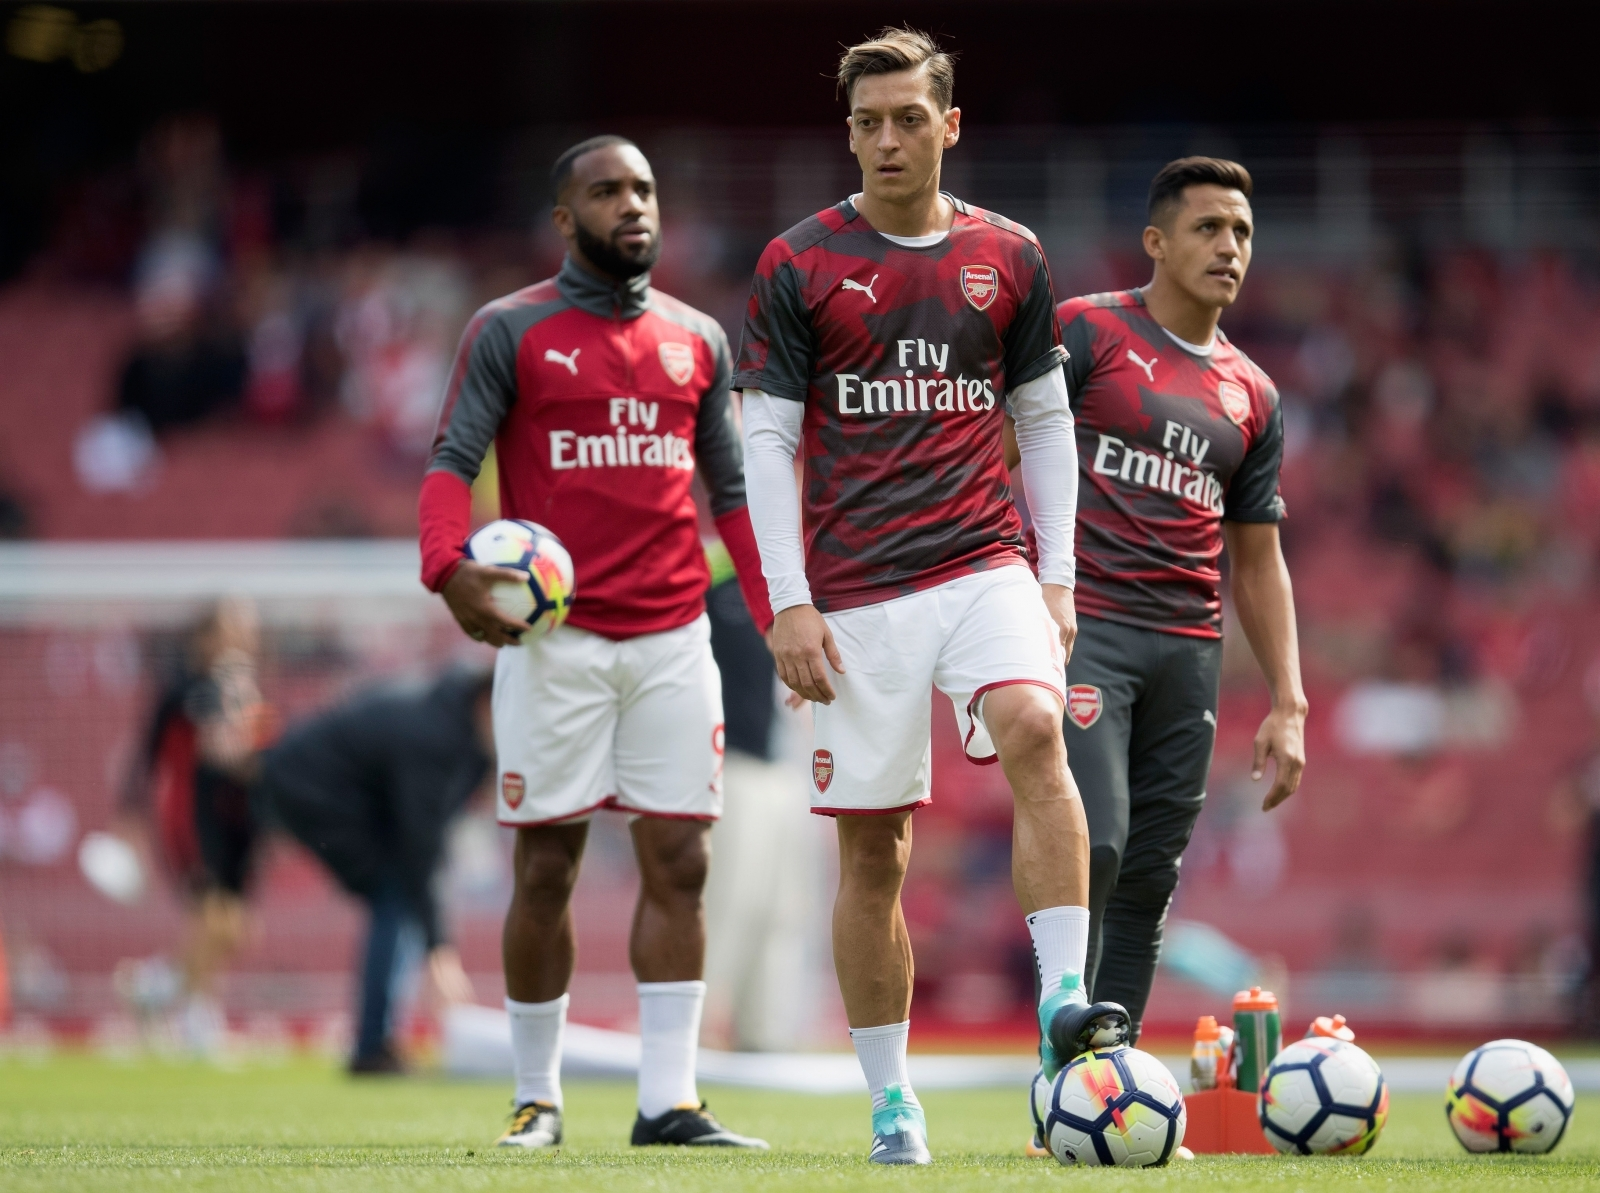 Serie A giants confirm interest in Arsenal star